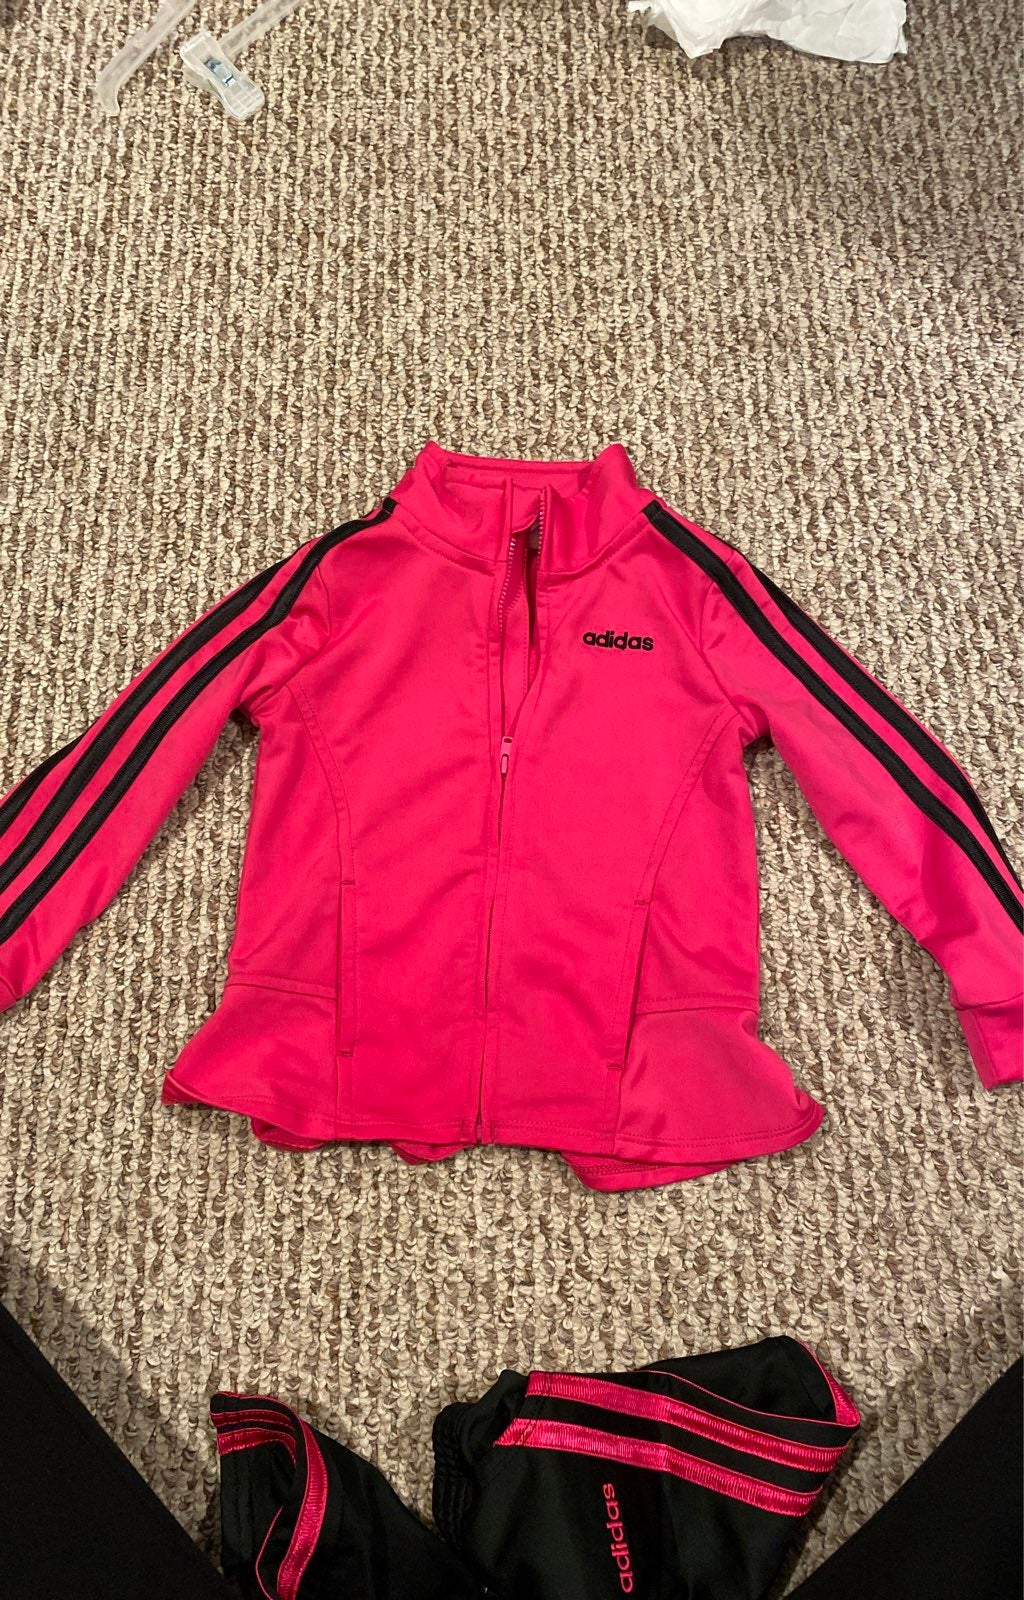 Kids Adidas 3-Stripes Track Suit